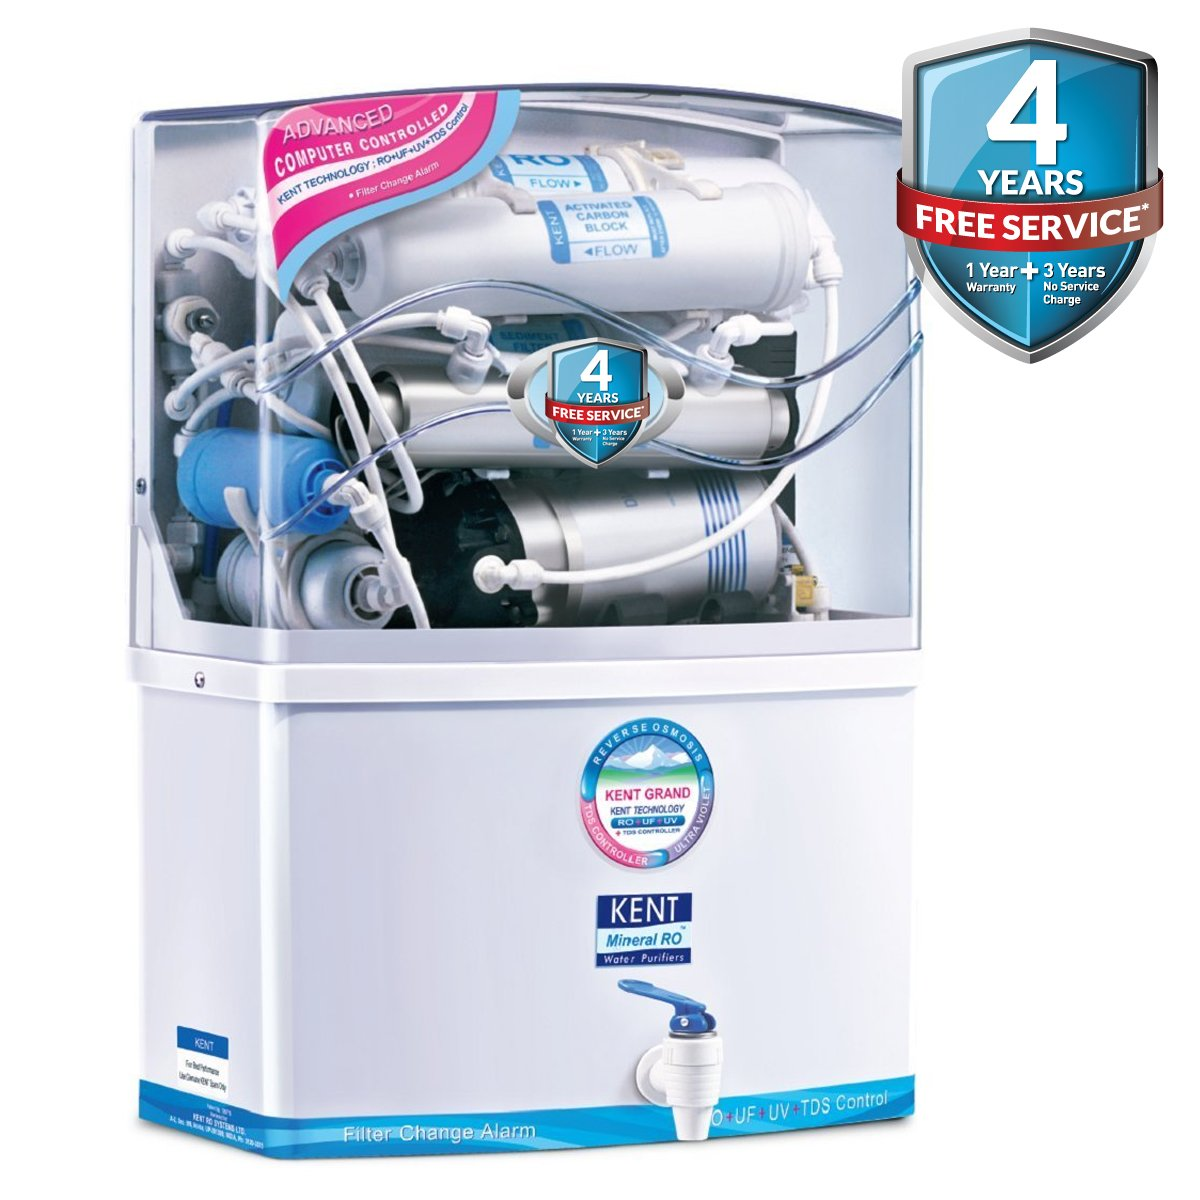 Kent Grand 8 Litres Wall Mountable Ro Uv Uf Tds Water Purifier Drinking Alarm Circuit Home Kitchen